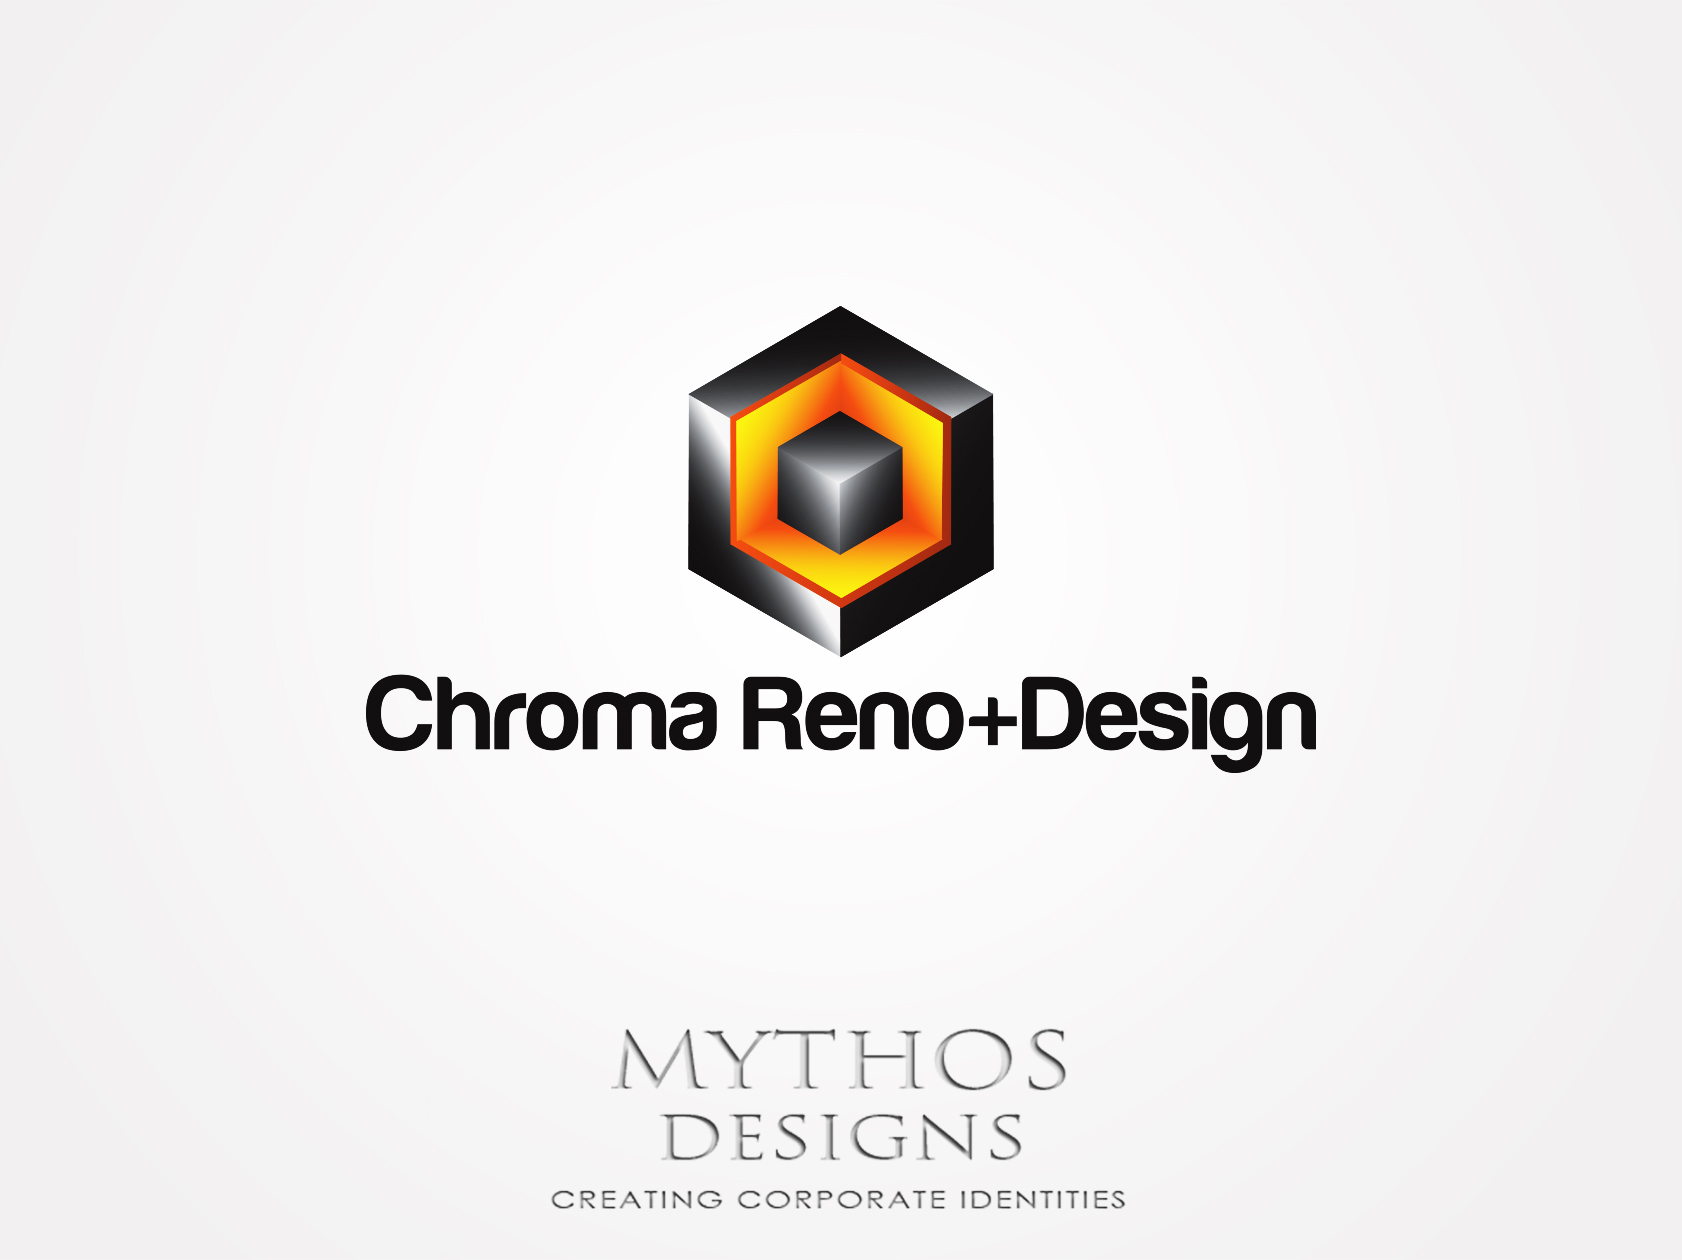 Logo Design by Mythos Designs - Entry No. 270 in the Logo Design Contest Inspiring Logo Design for Chroma Reno+Design.